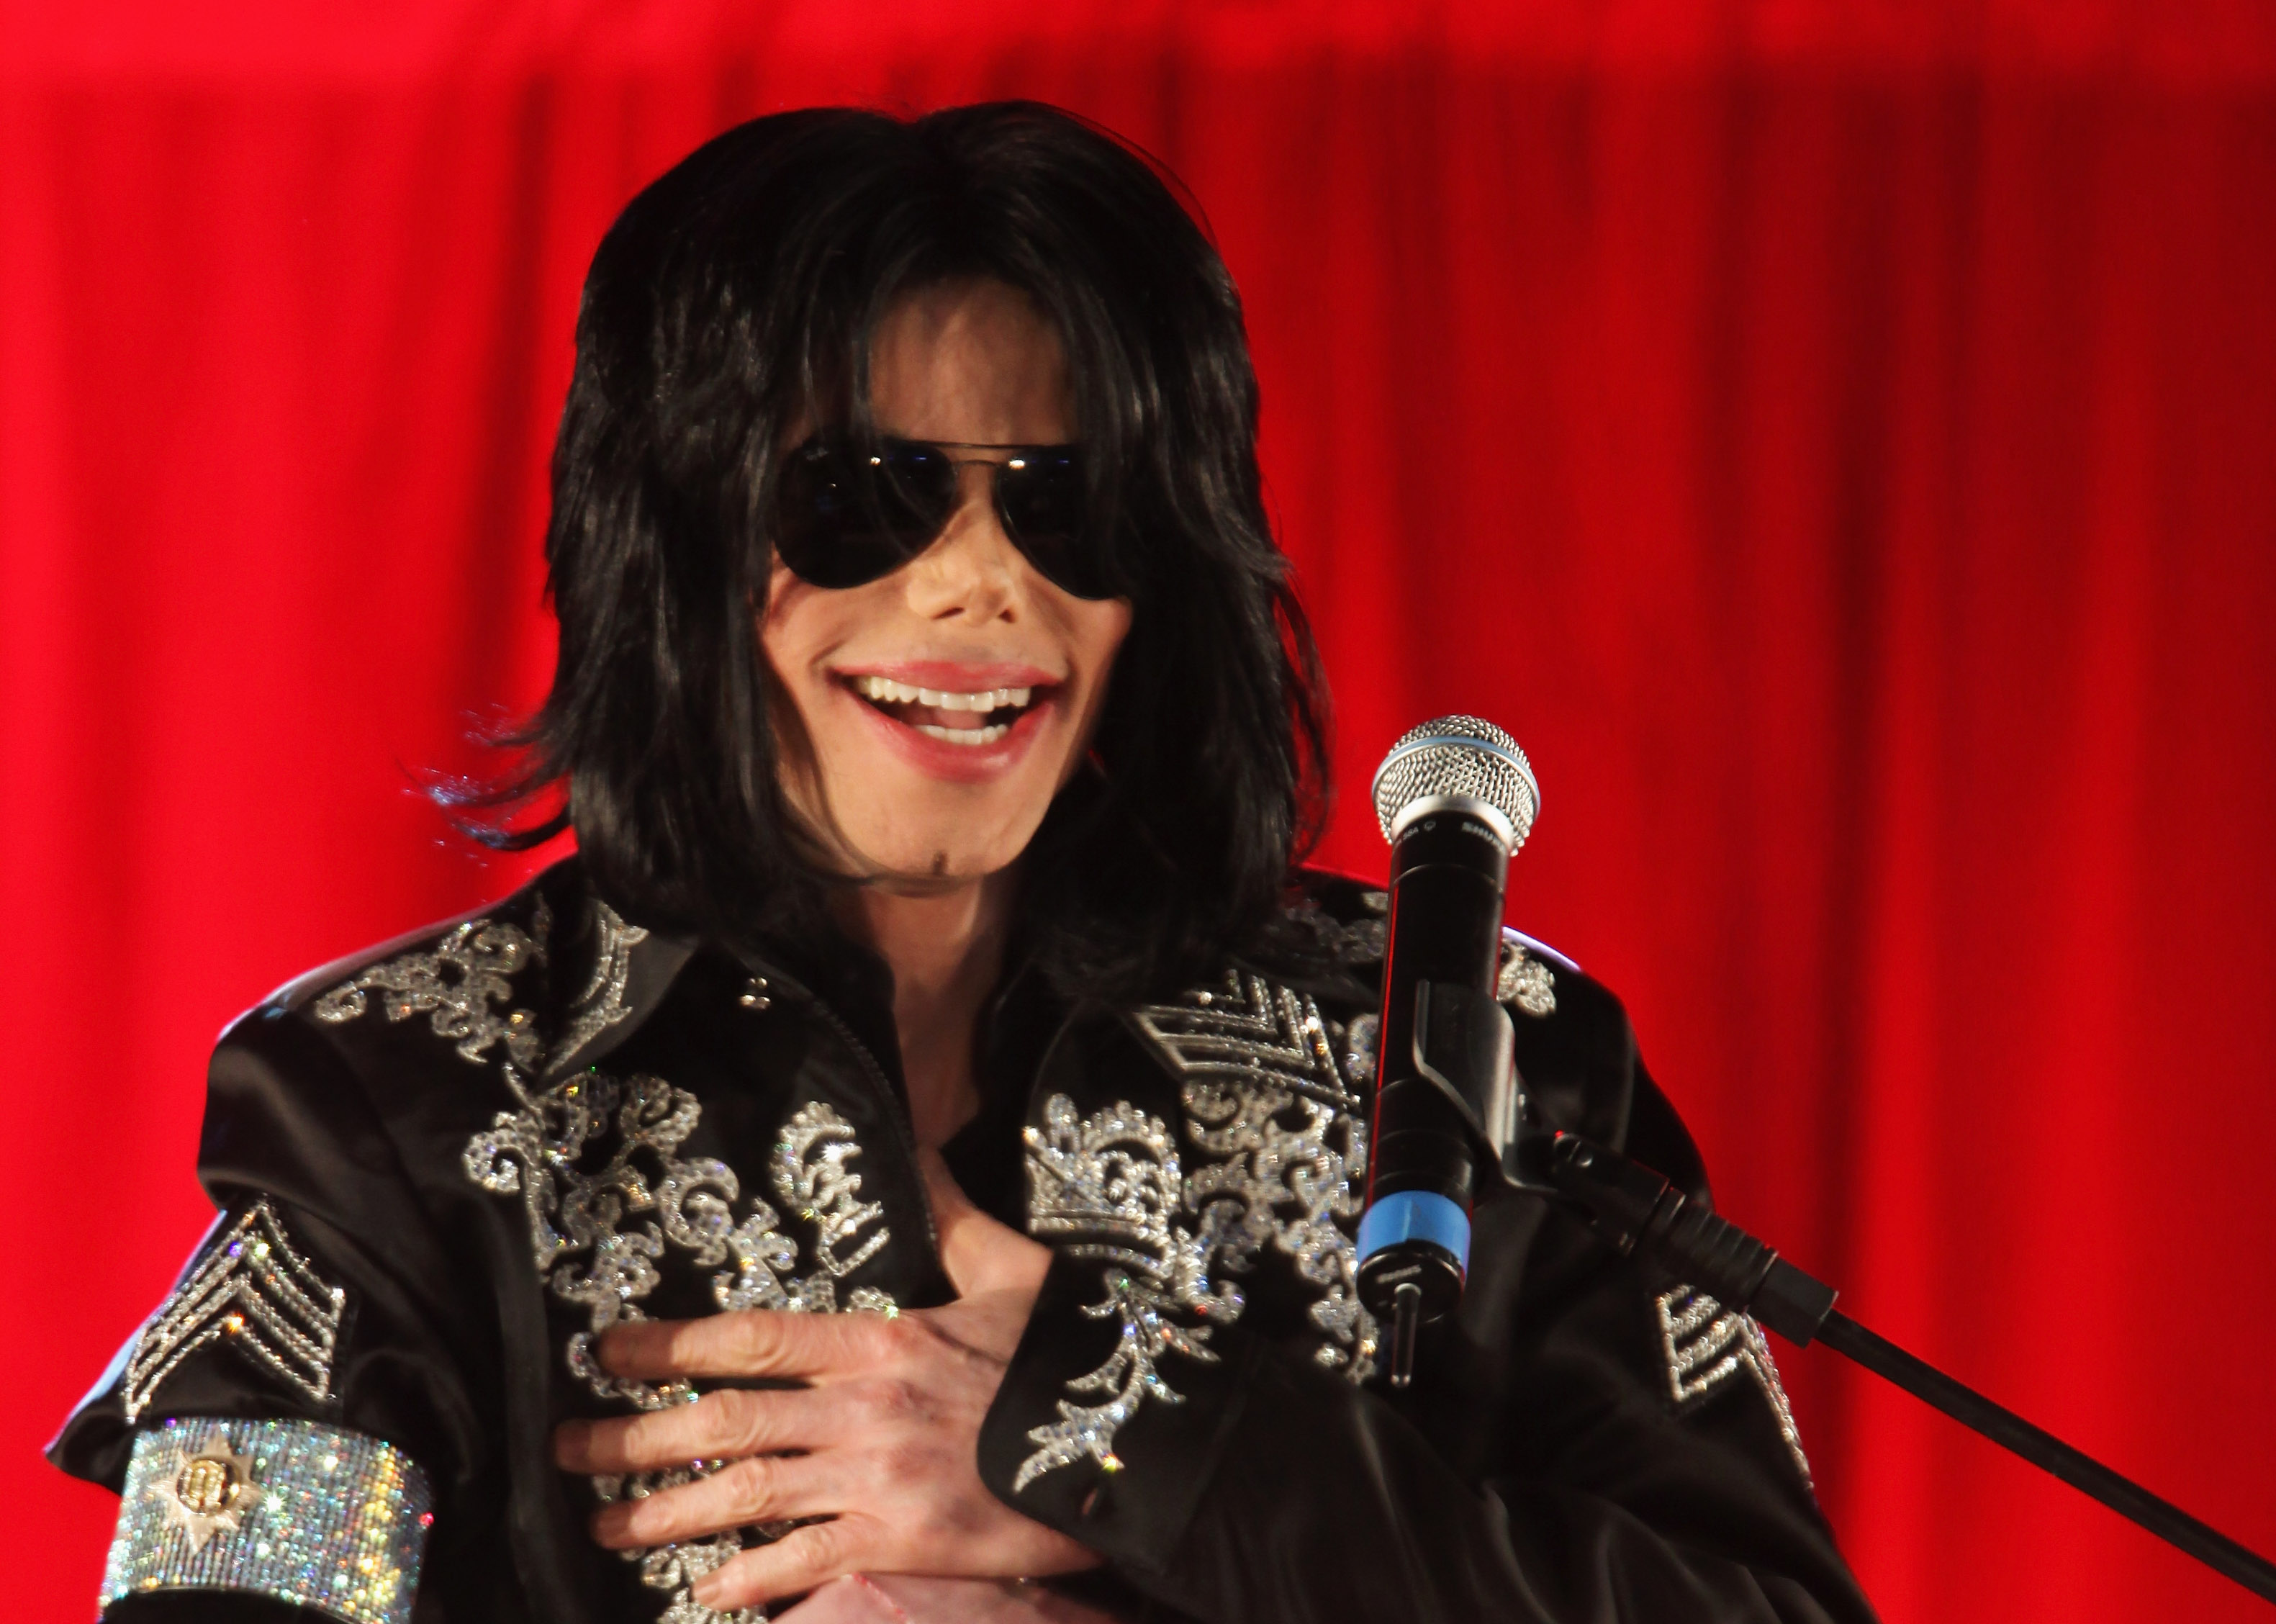 Michael Jackson Victim Makes Shocking Claims About Singer GettyImages 85259926